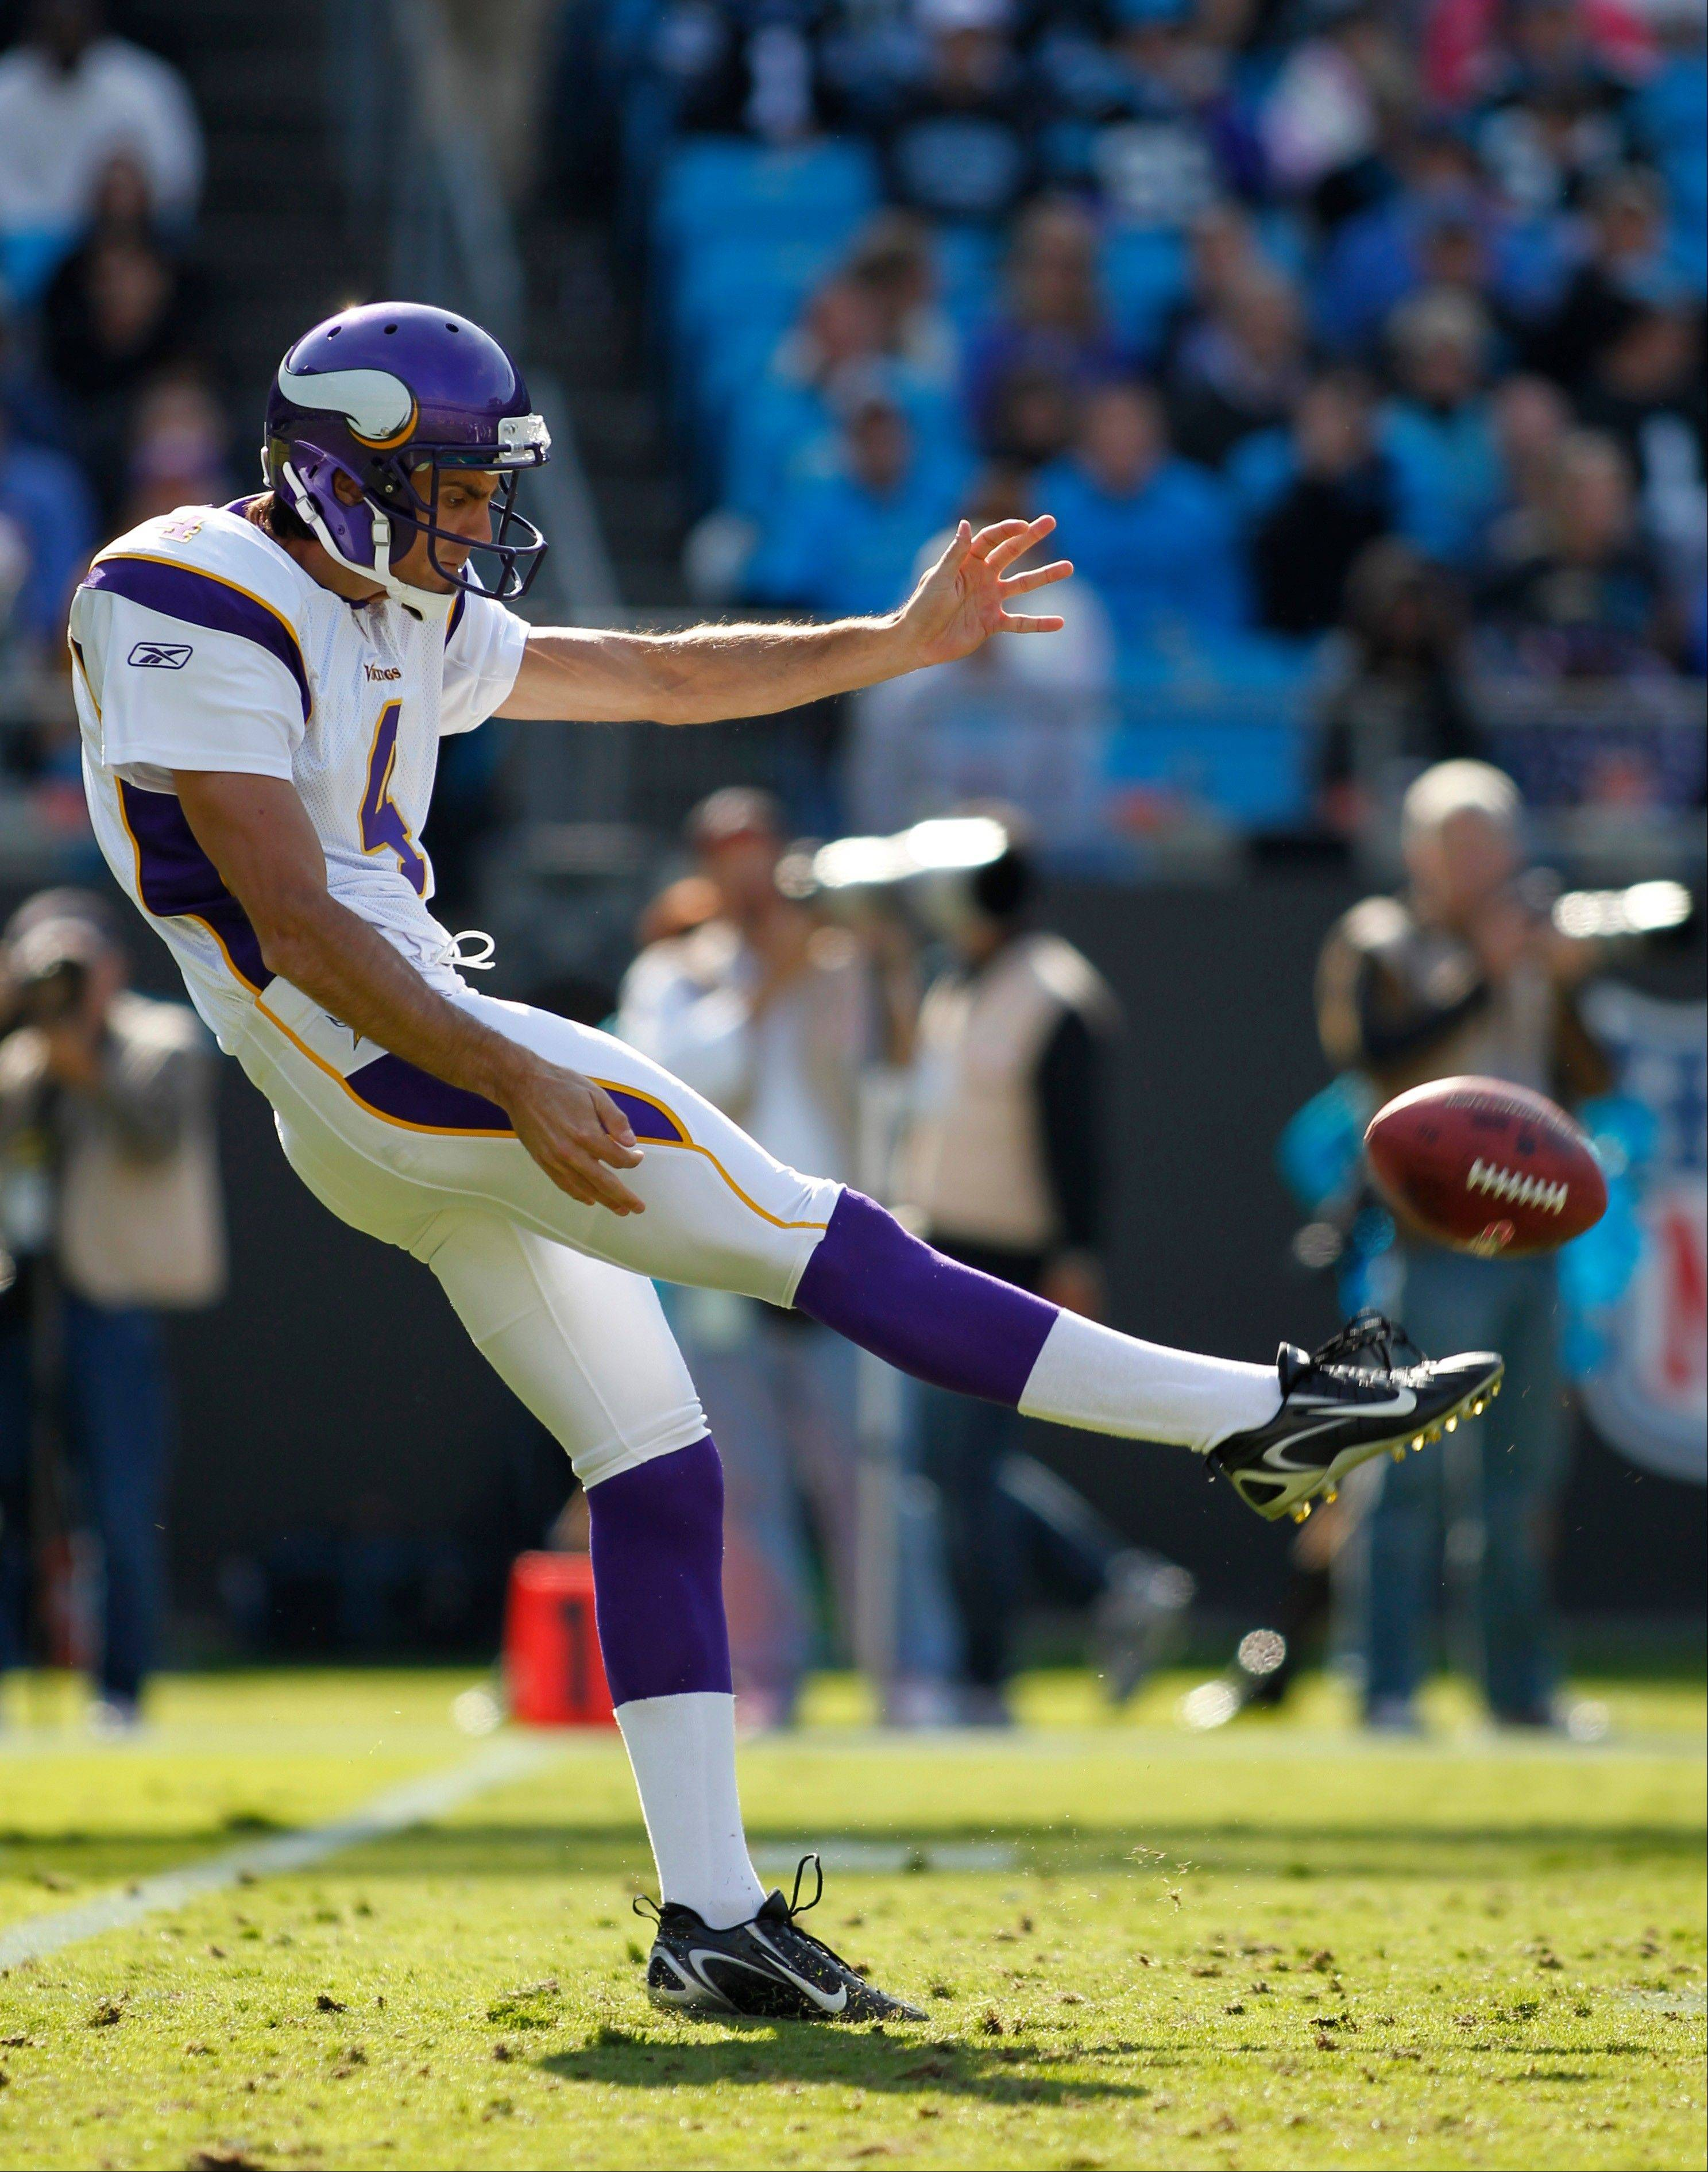 In this Oct. 30, 2011, photo, Minnesota Vikings' Chris Kluwe punts to the Carolina Panthers during an NFL football game in Charlotte, N.C. Kluwe, who is no longer with the Vikings, says the team's special teams coordinator, Mike Priefer, made anti-gay comments while Kluwe was with the team.